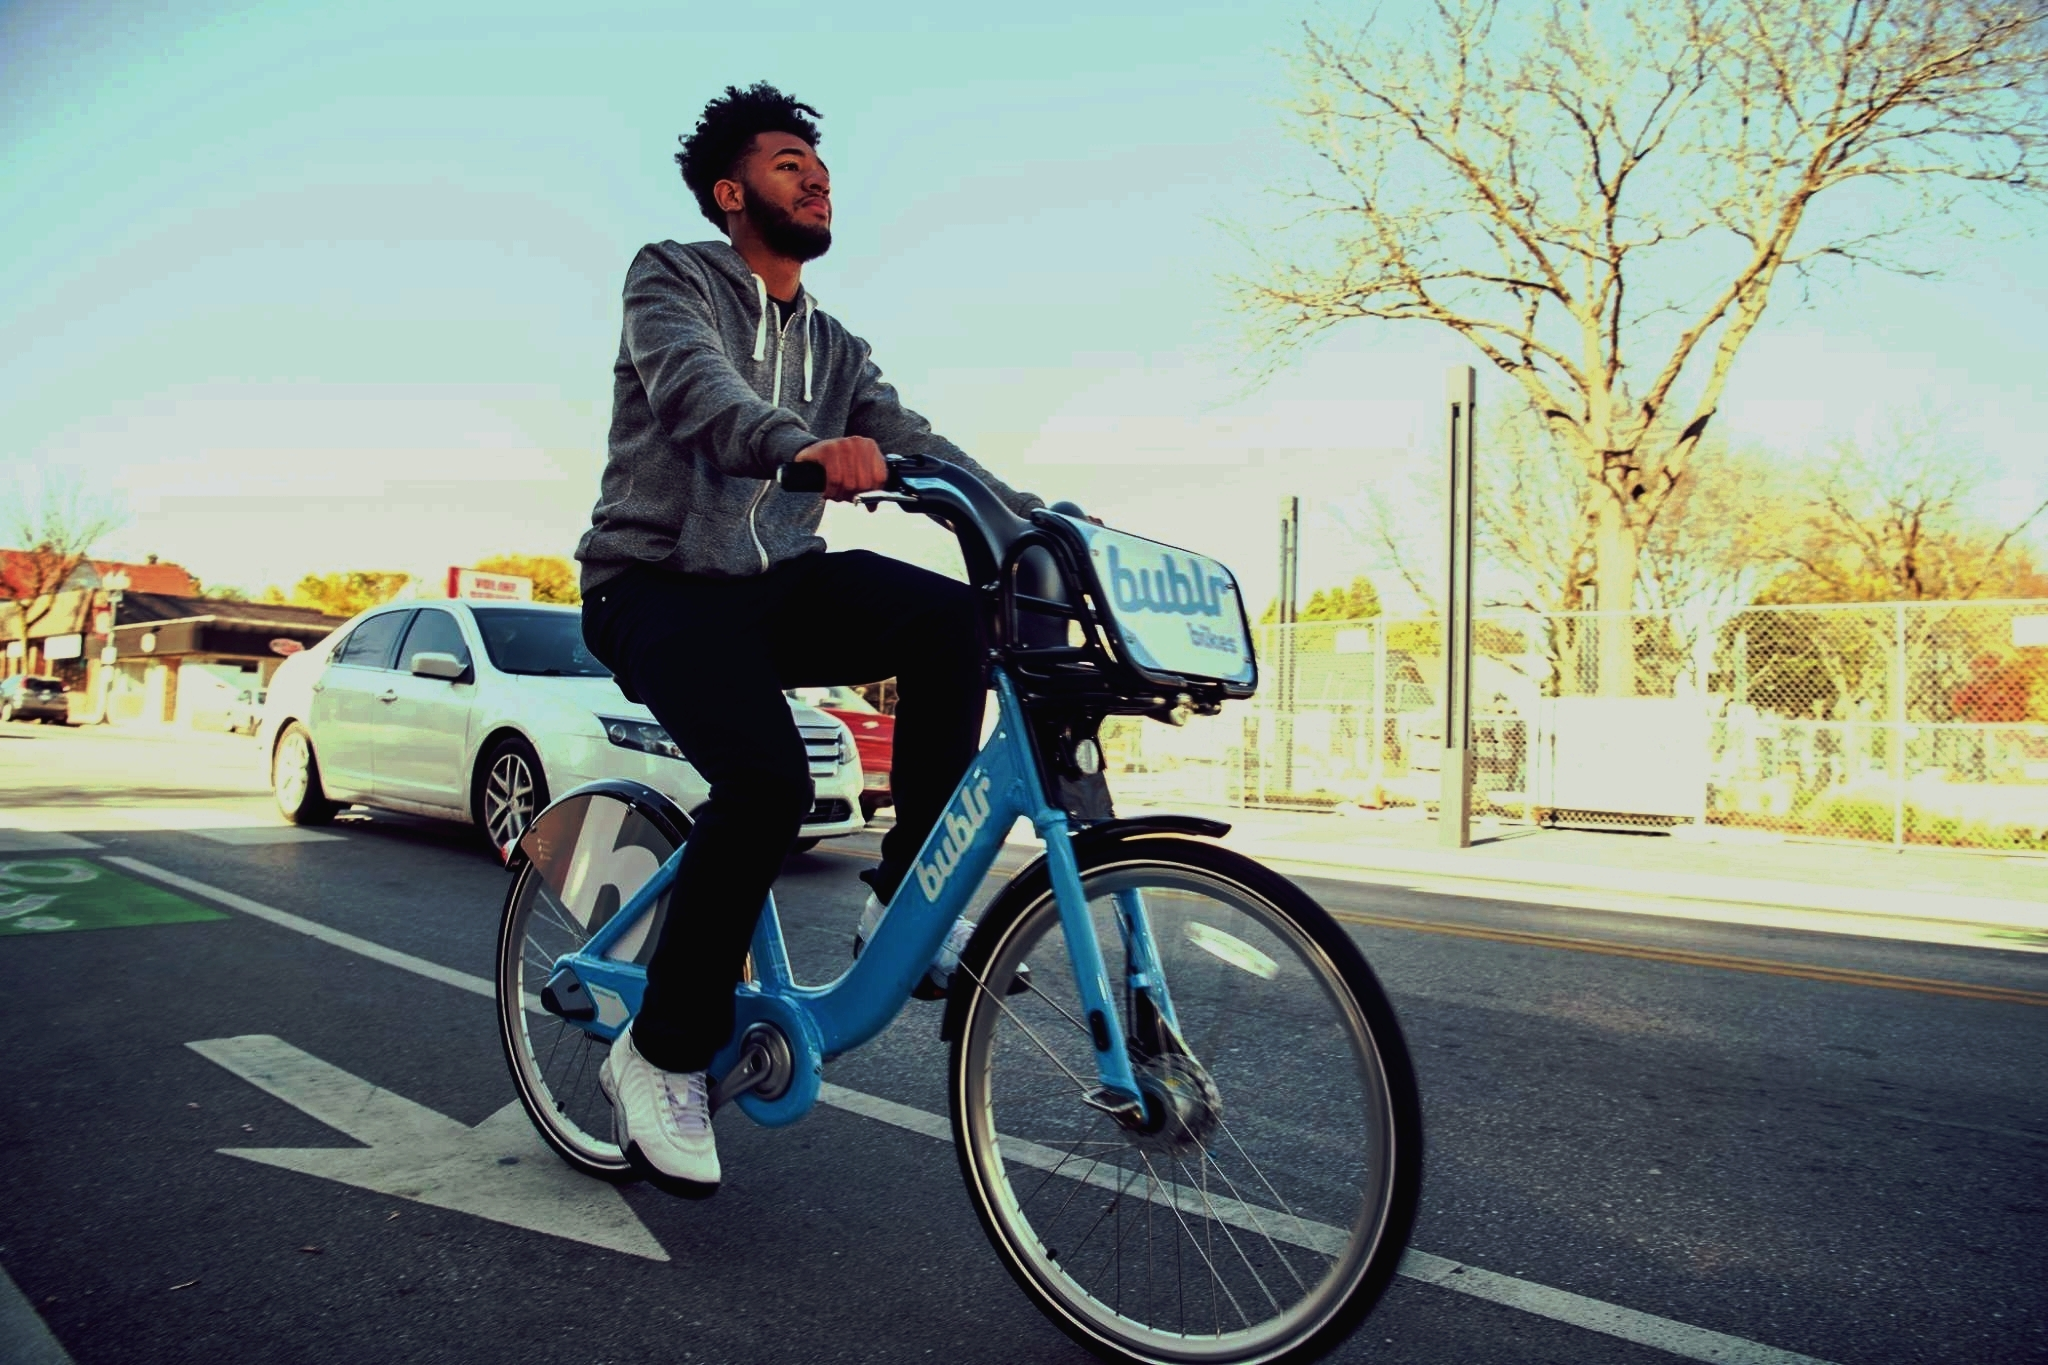 Bublr Bikes - Milwaukee's bike share organization, provides all City Year Milwaukee AmeriCorps members a generous discount. Annual membership fees are reduced from $80 to just $8 and all members can check out a bike for an hour.